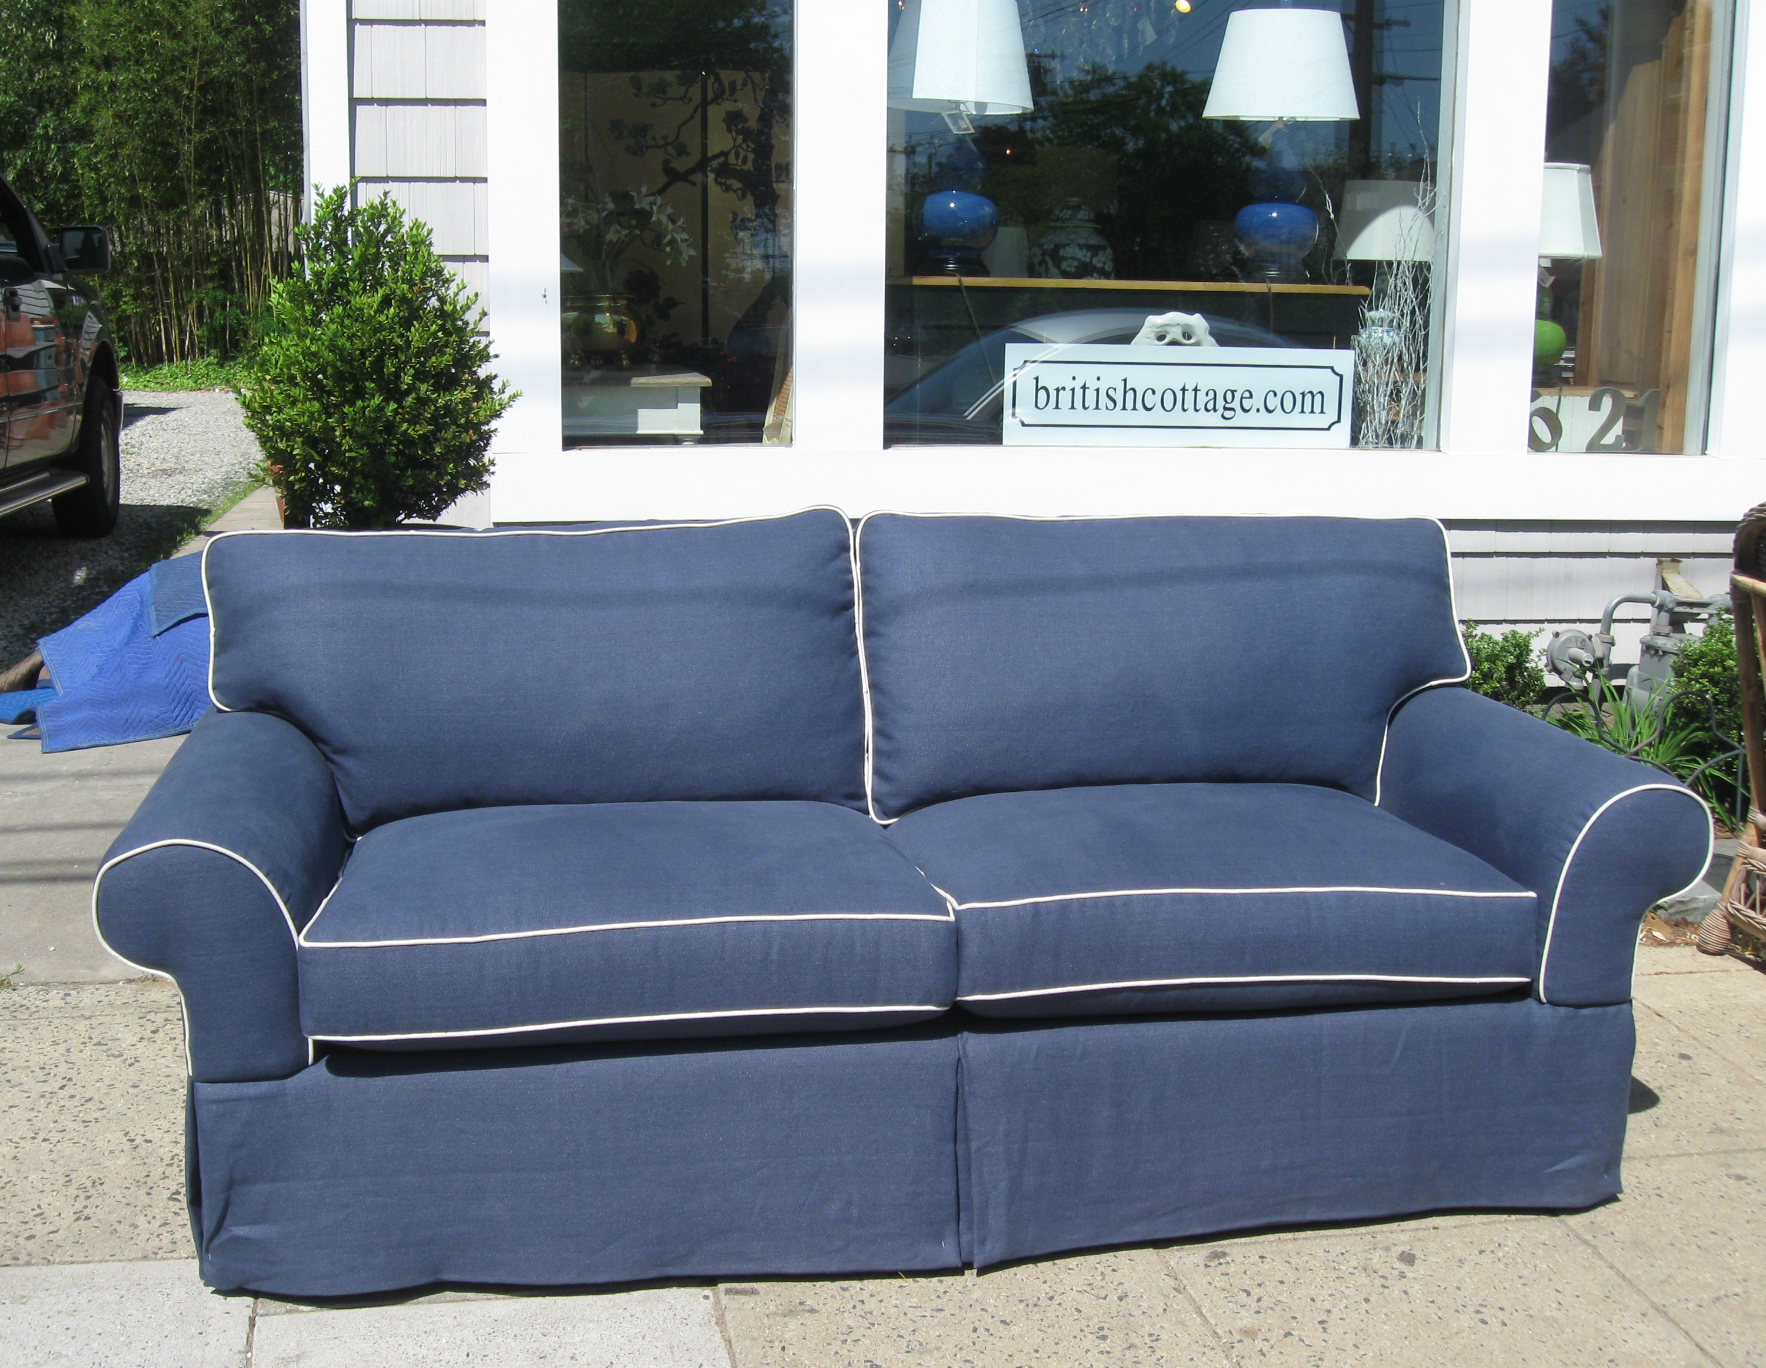 Hickory White Couch in navy linen